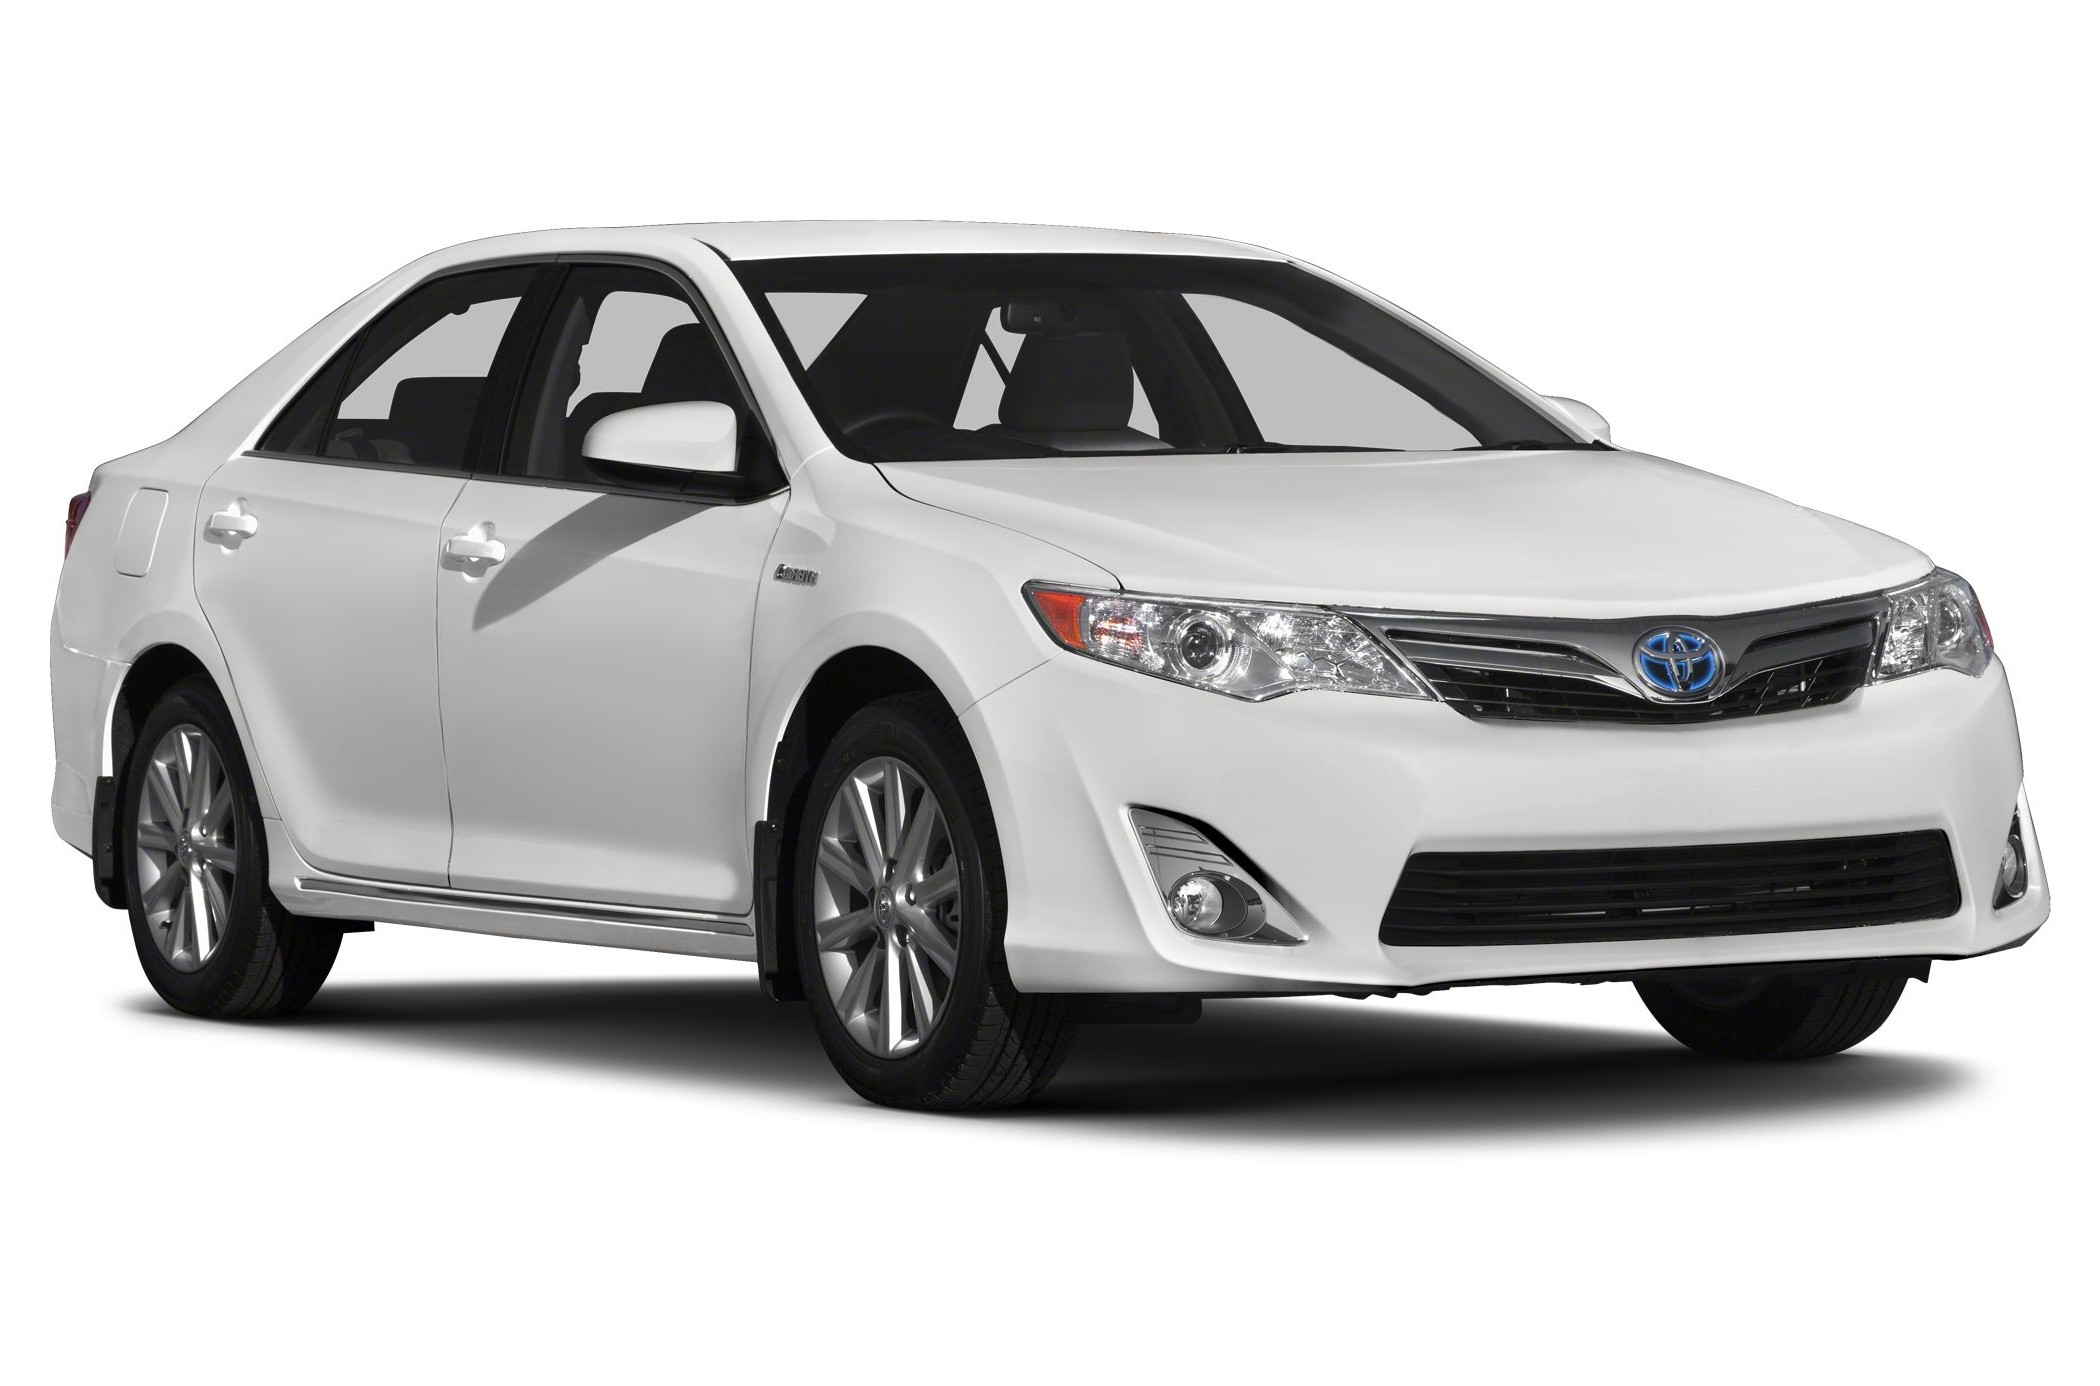 Toyota Camry February 2015